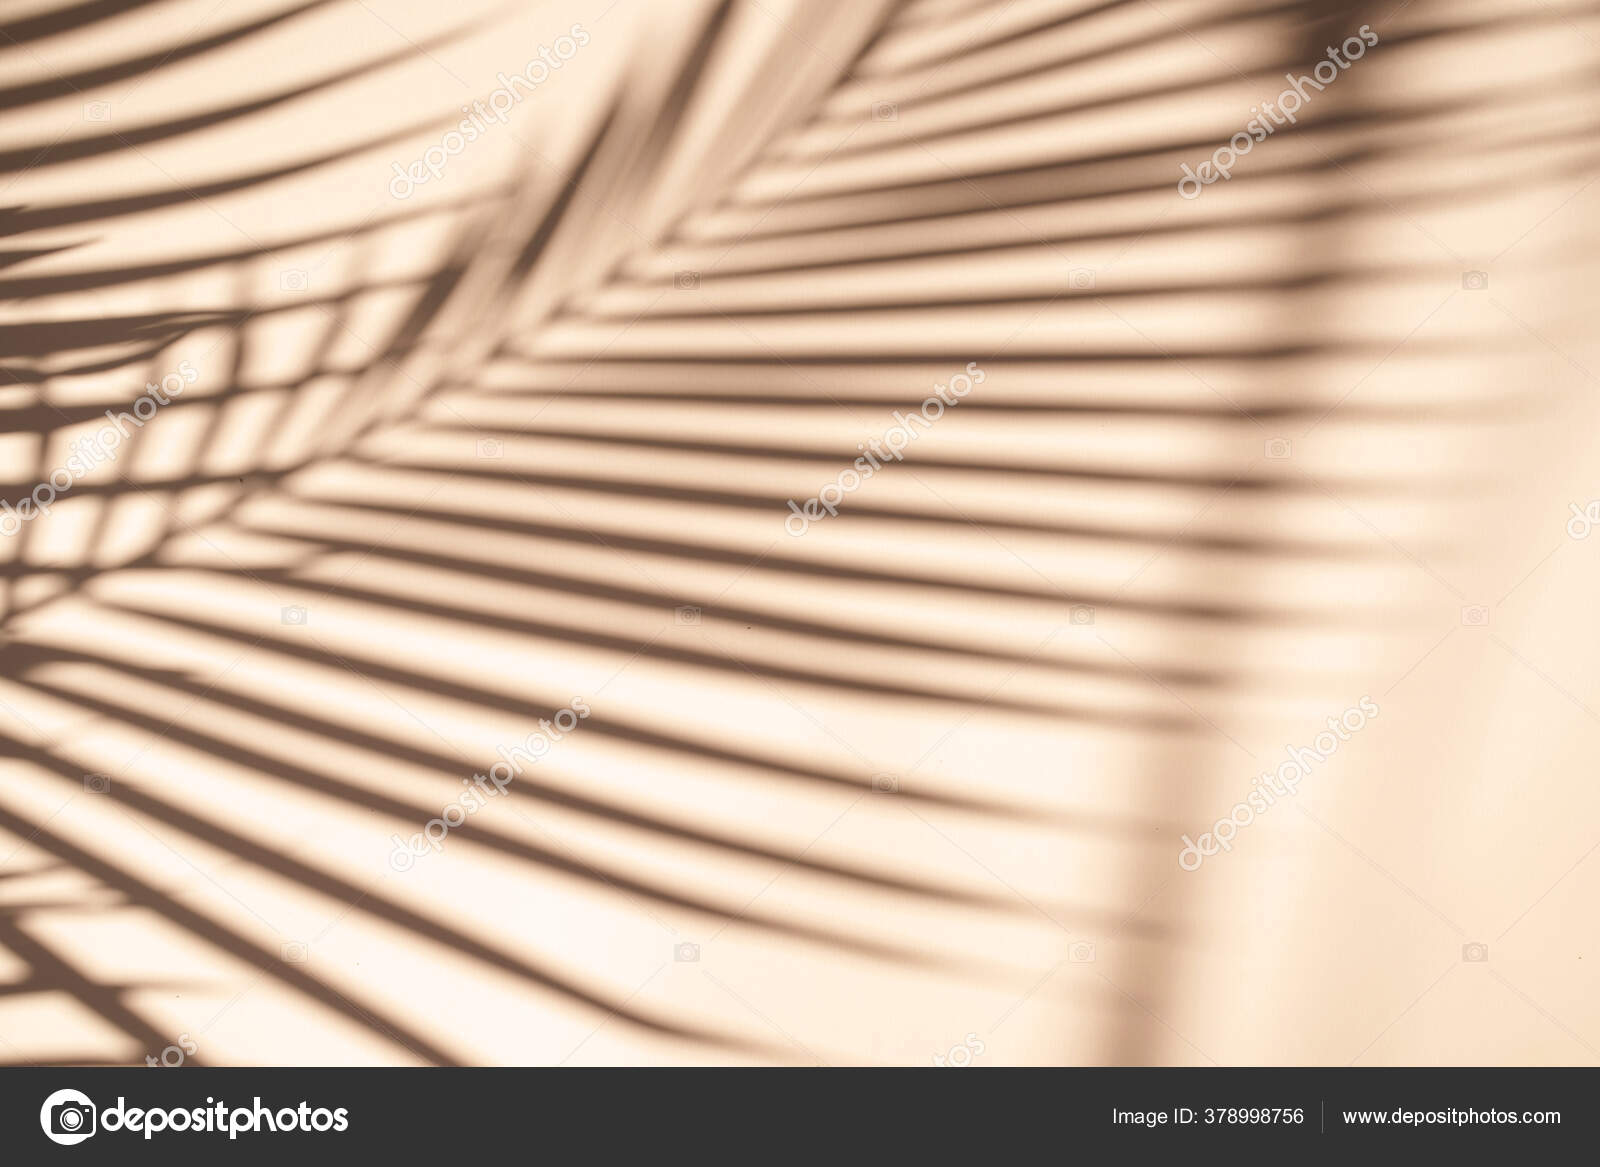 Tropical Palm Leaves Natural Shadow Overlay Orange Texture Background Overlay Stock Photo C Nuchylee 378998756 30 realistic tropical leaves pack is one of the best realistic tropical leaves overlays. https depositphotos com 378998756 stock photo tropical palm leaves natural shadow html